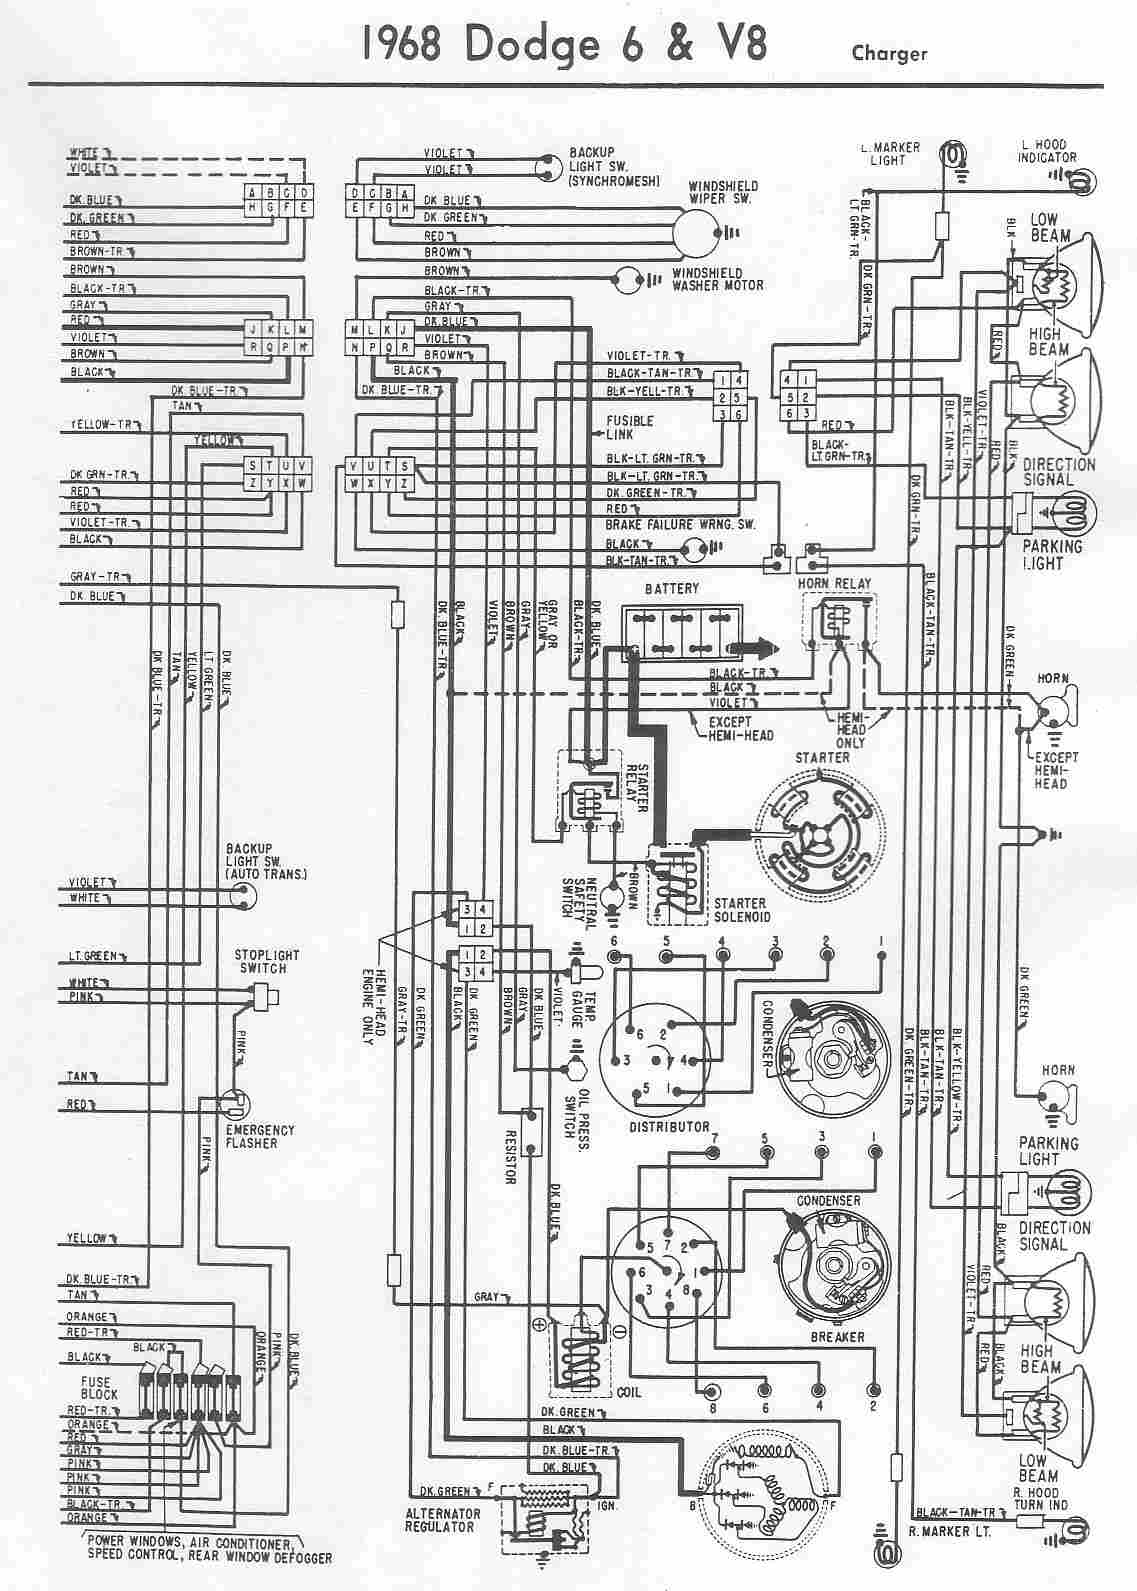 small resolution of charger electrical wiring diagram of 1968 dodge 6 and v8 t